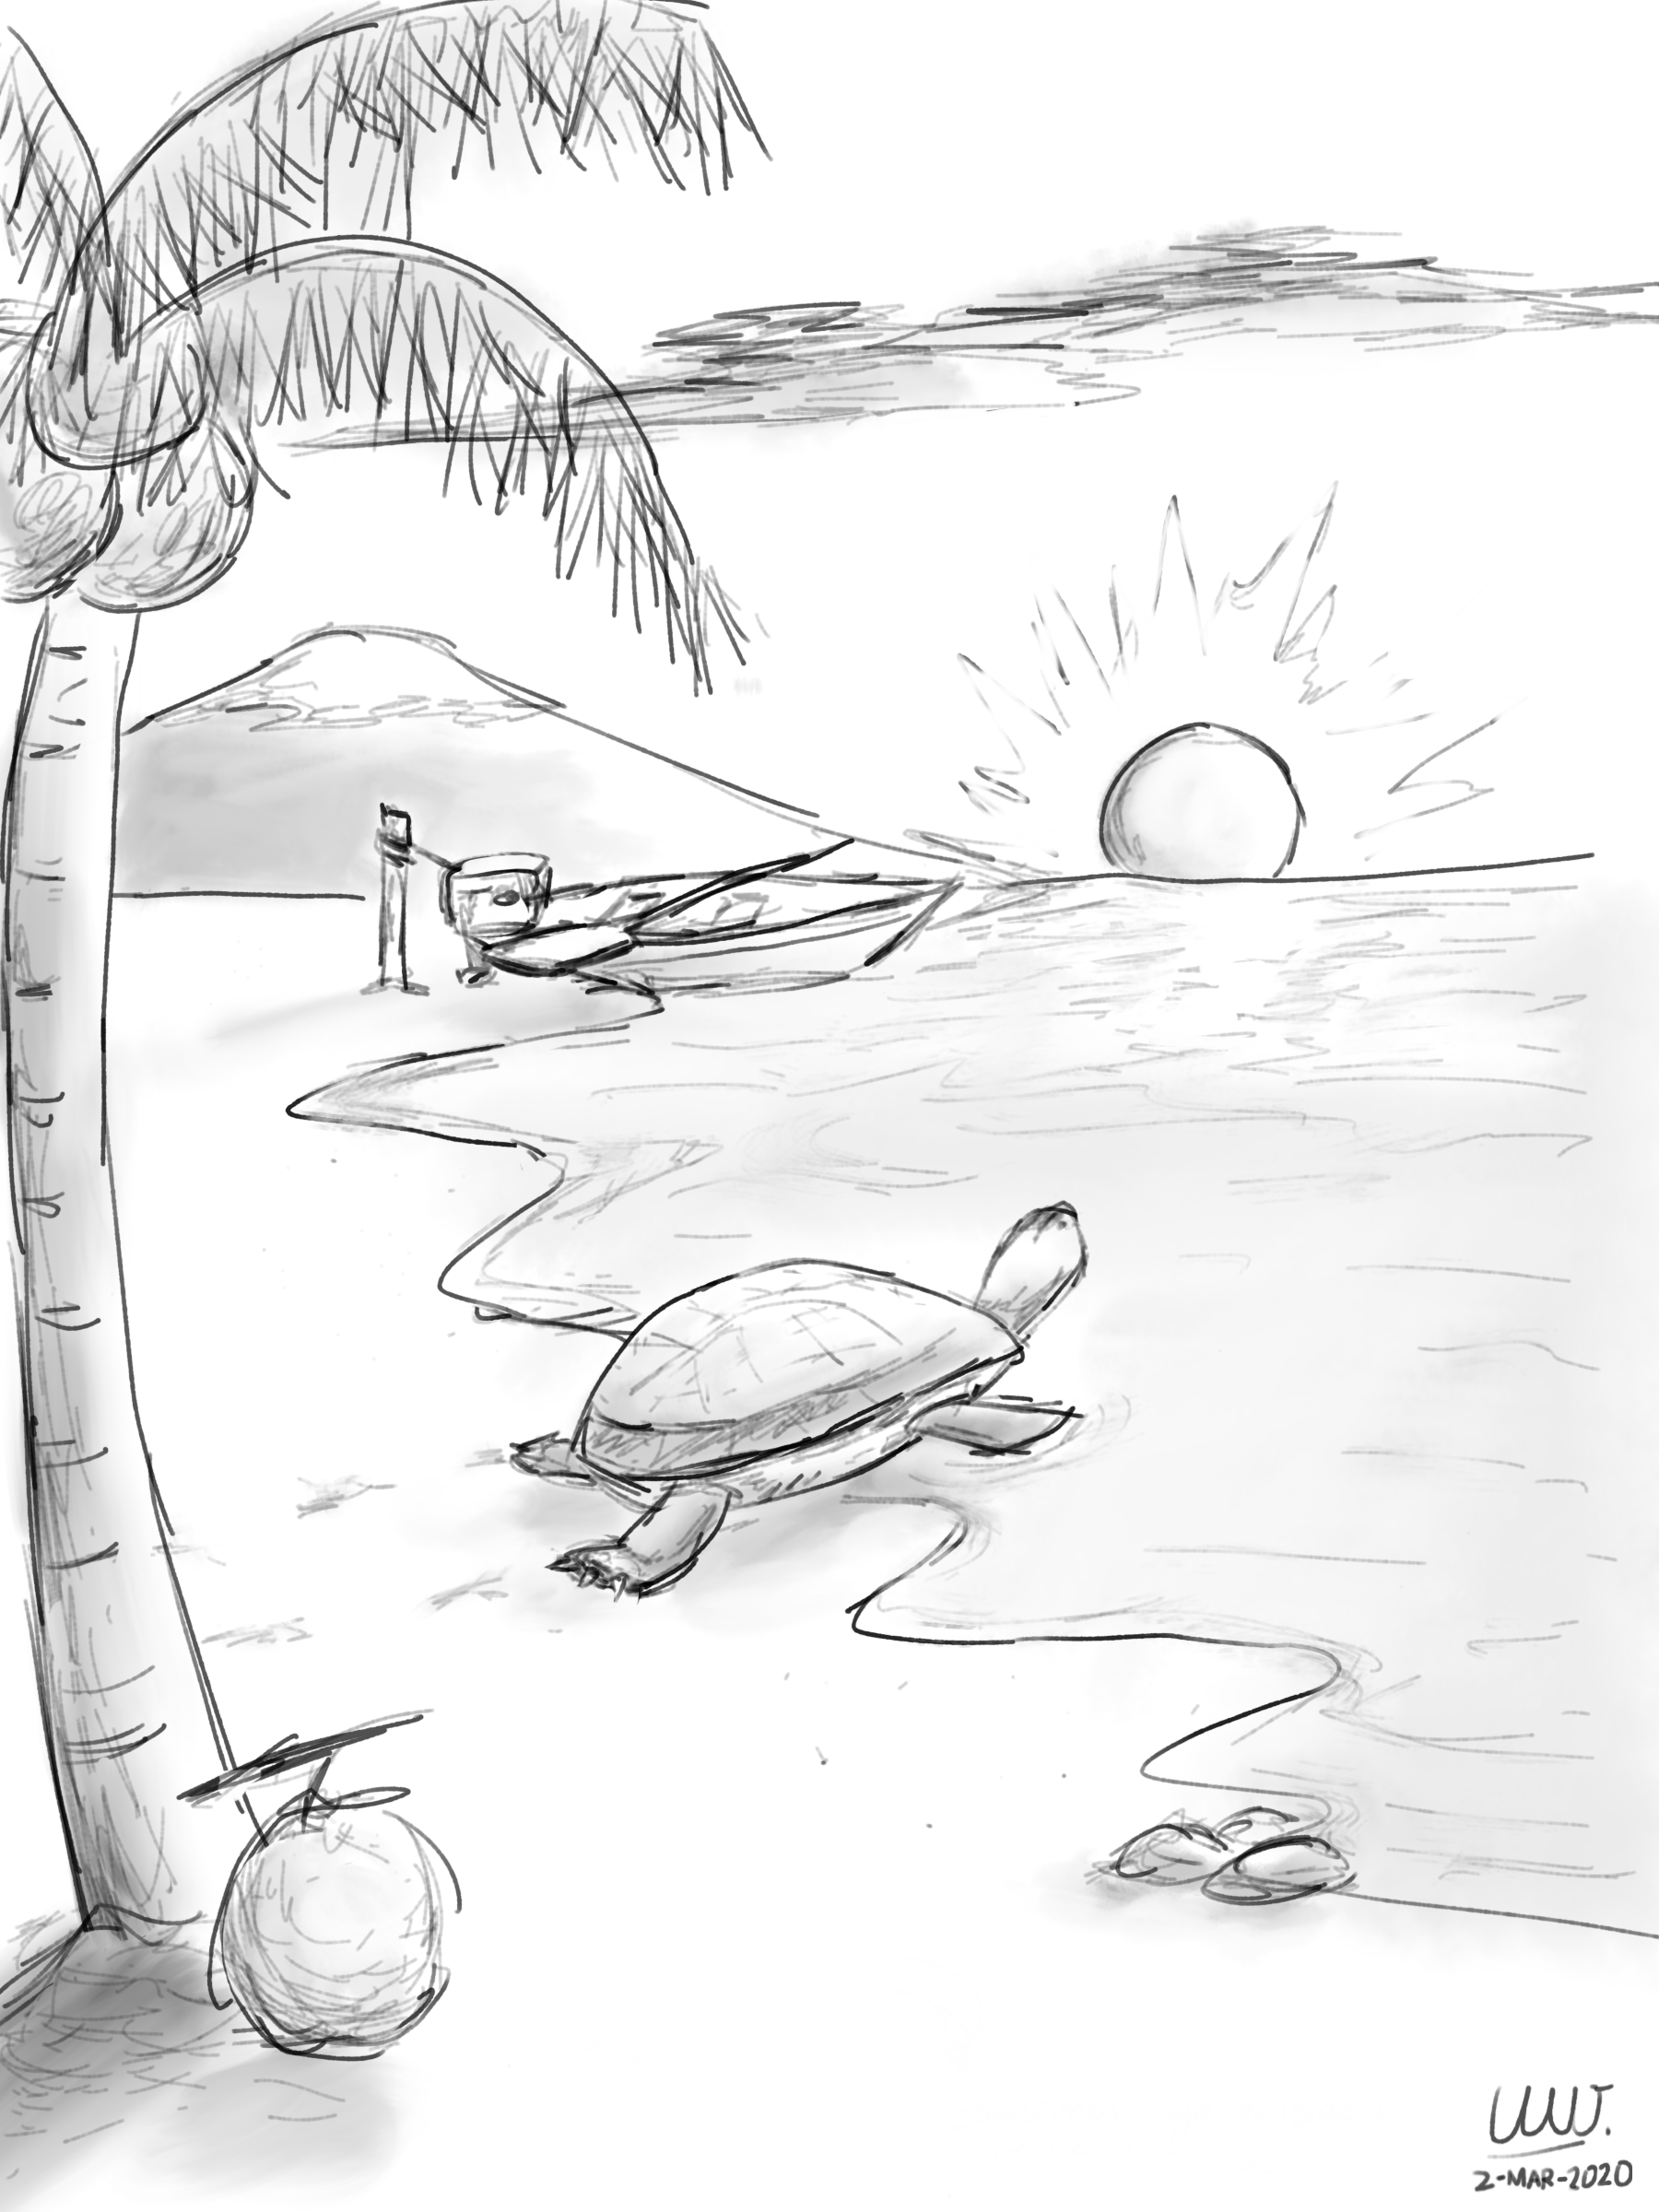 An artwork of a turtle, seemingly looking at the sunset at the shore. Some clouds, a mountain, a coconut tree, and a wooden boat can be seen in the background.